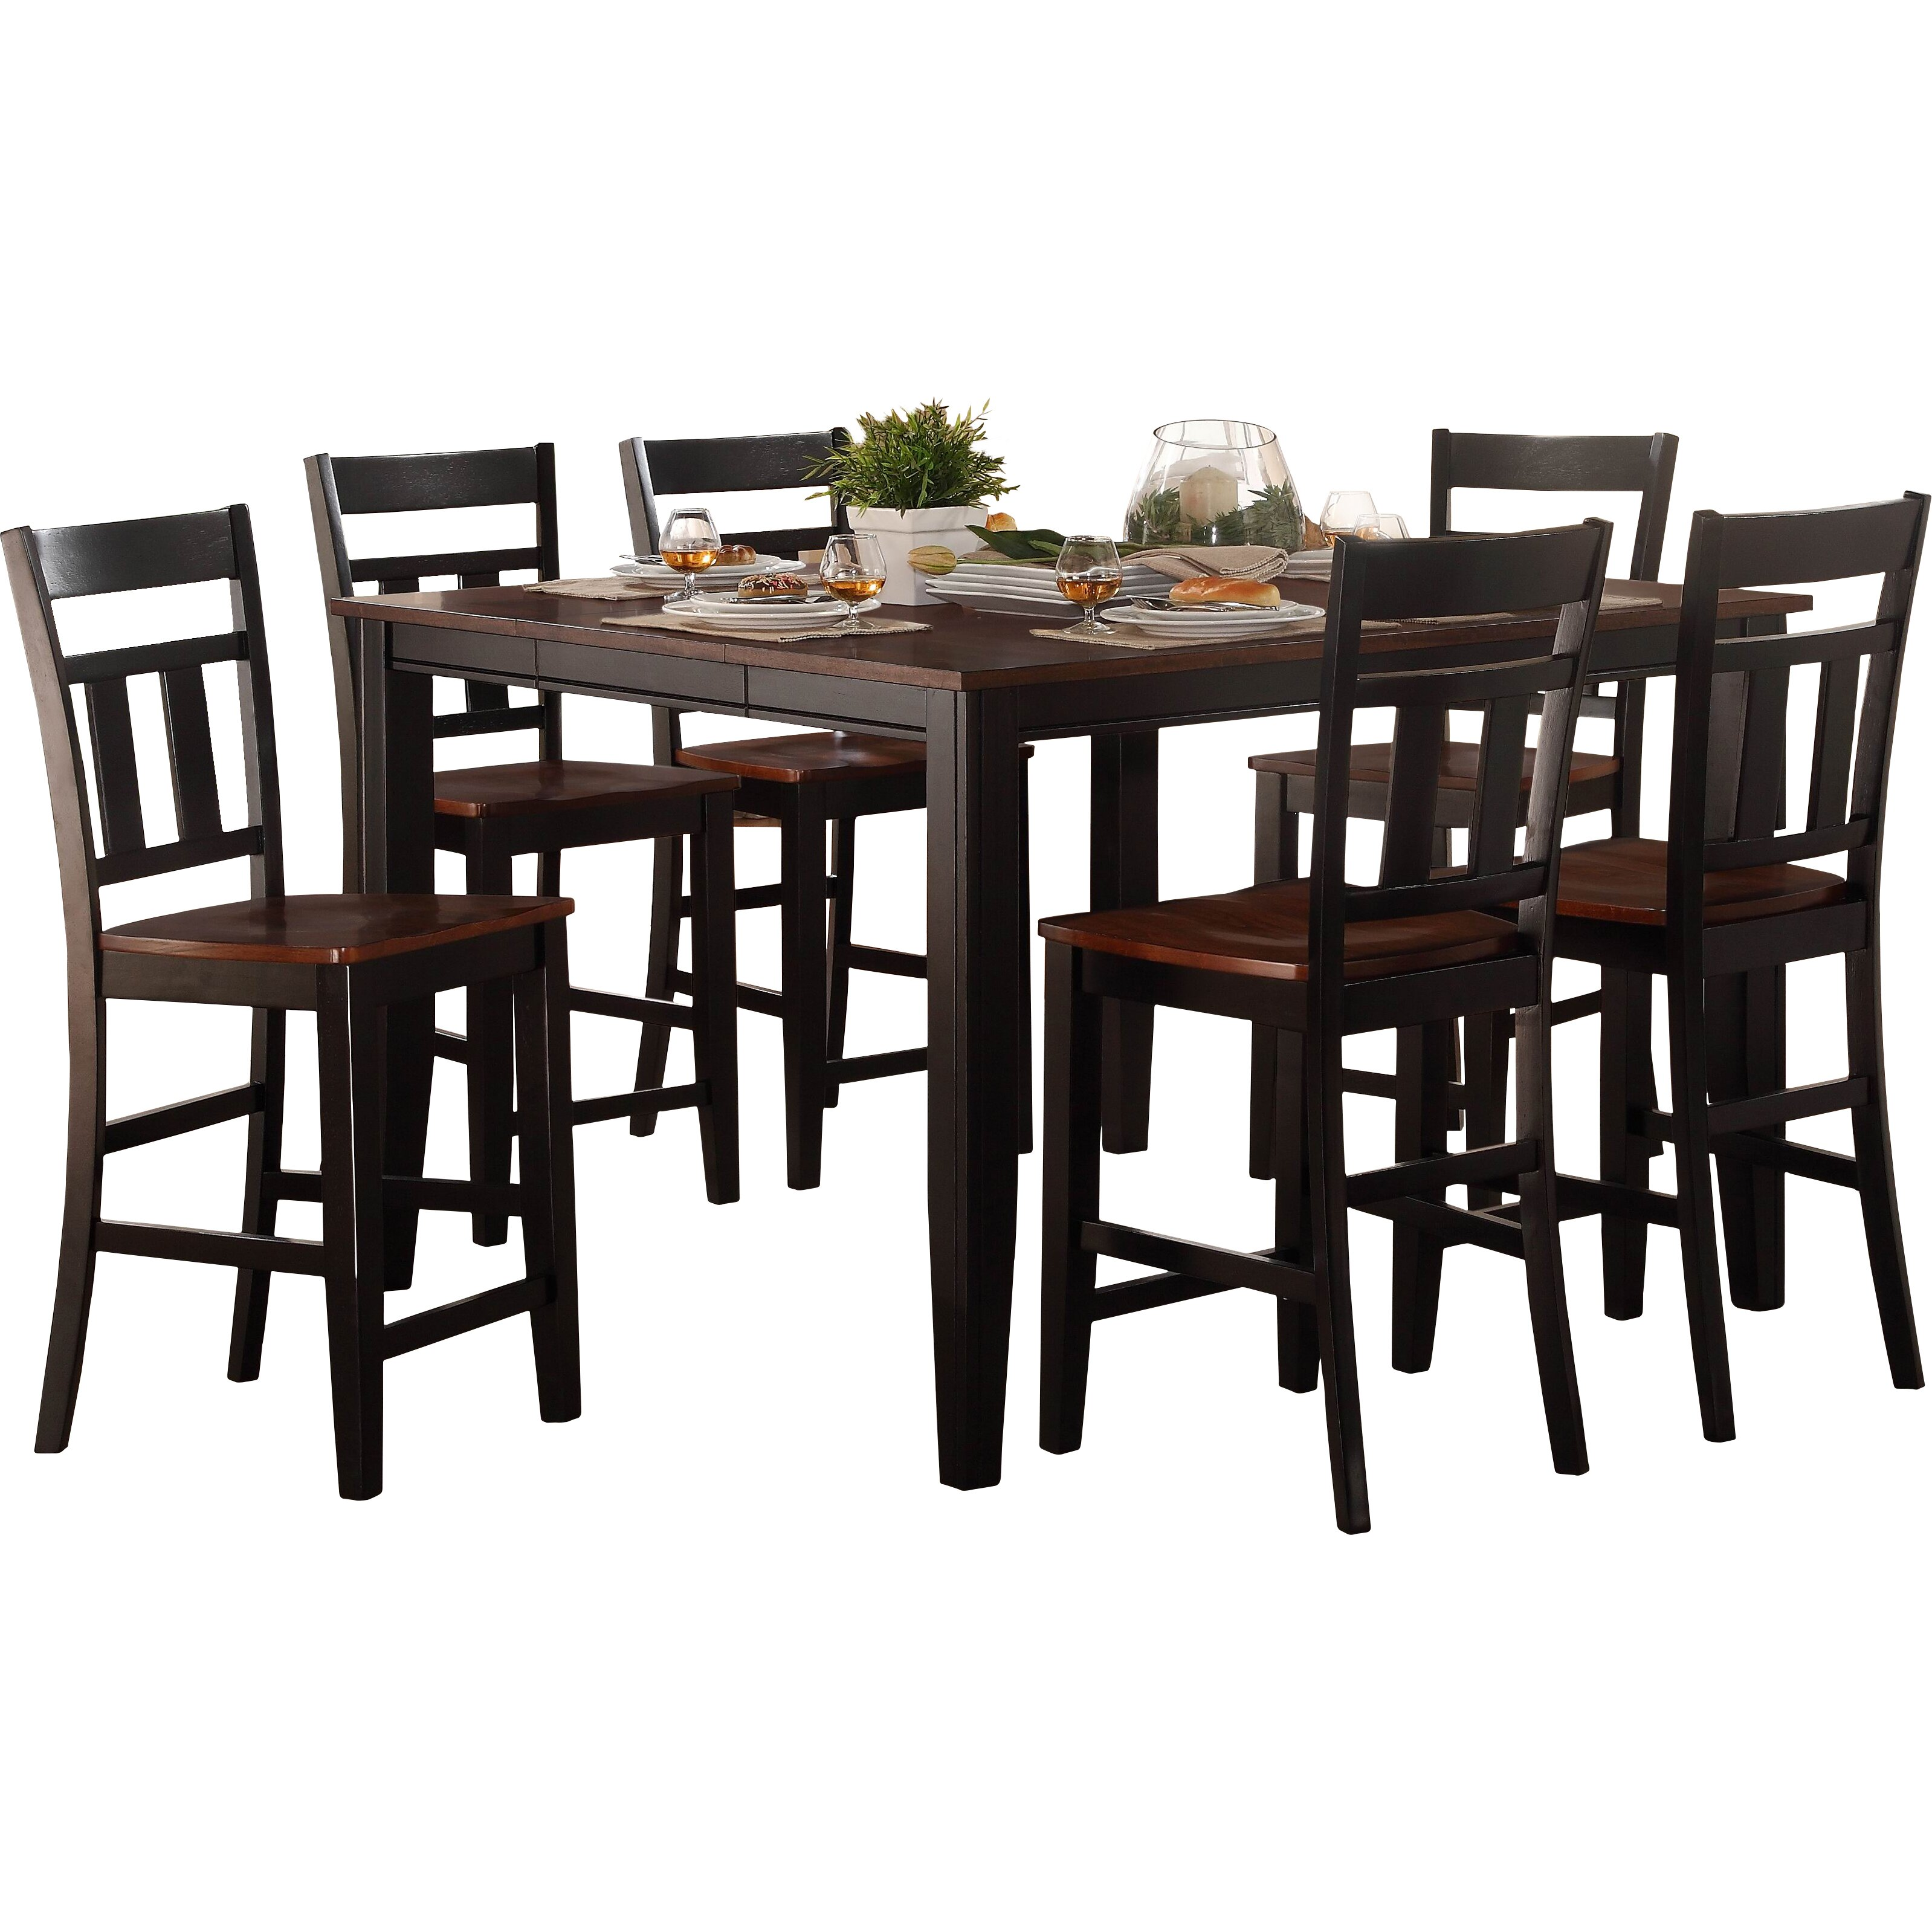 Andover mills thornton counter height extendable dining for Counter height extendable dining table